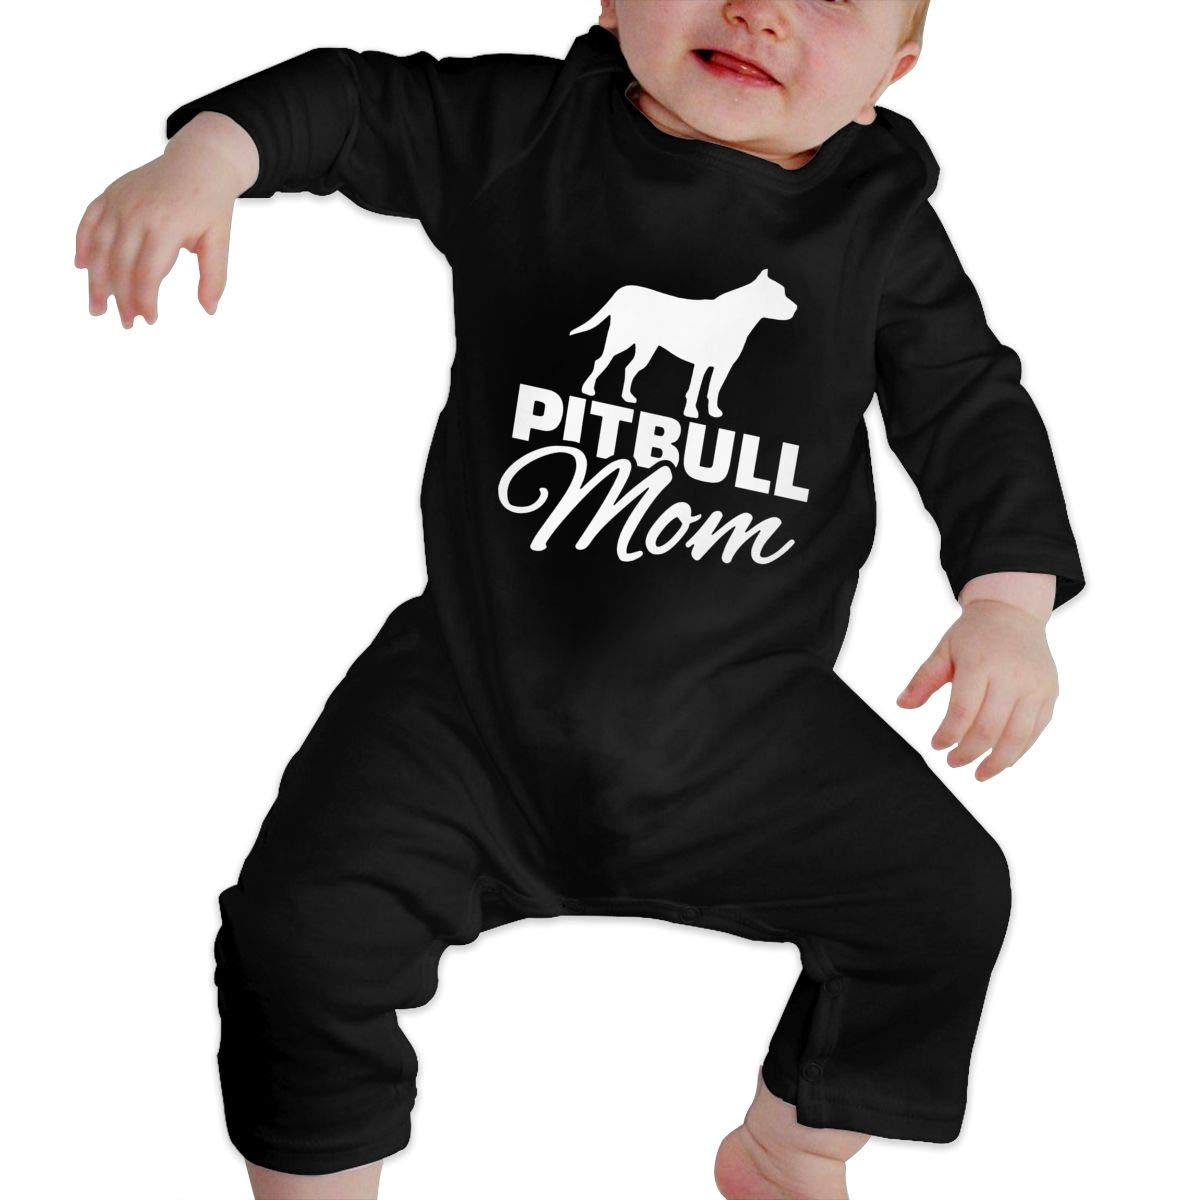 Fasenix Pitbull Mom Romper Jumpsuit Long Sleeve Bodysuit Overalls Outfits Clothes for Newborn Baby Boy Girl